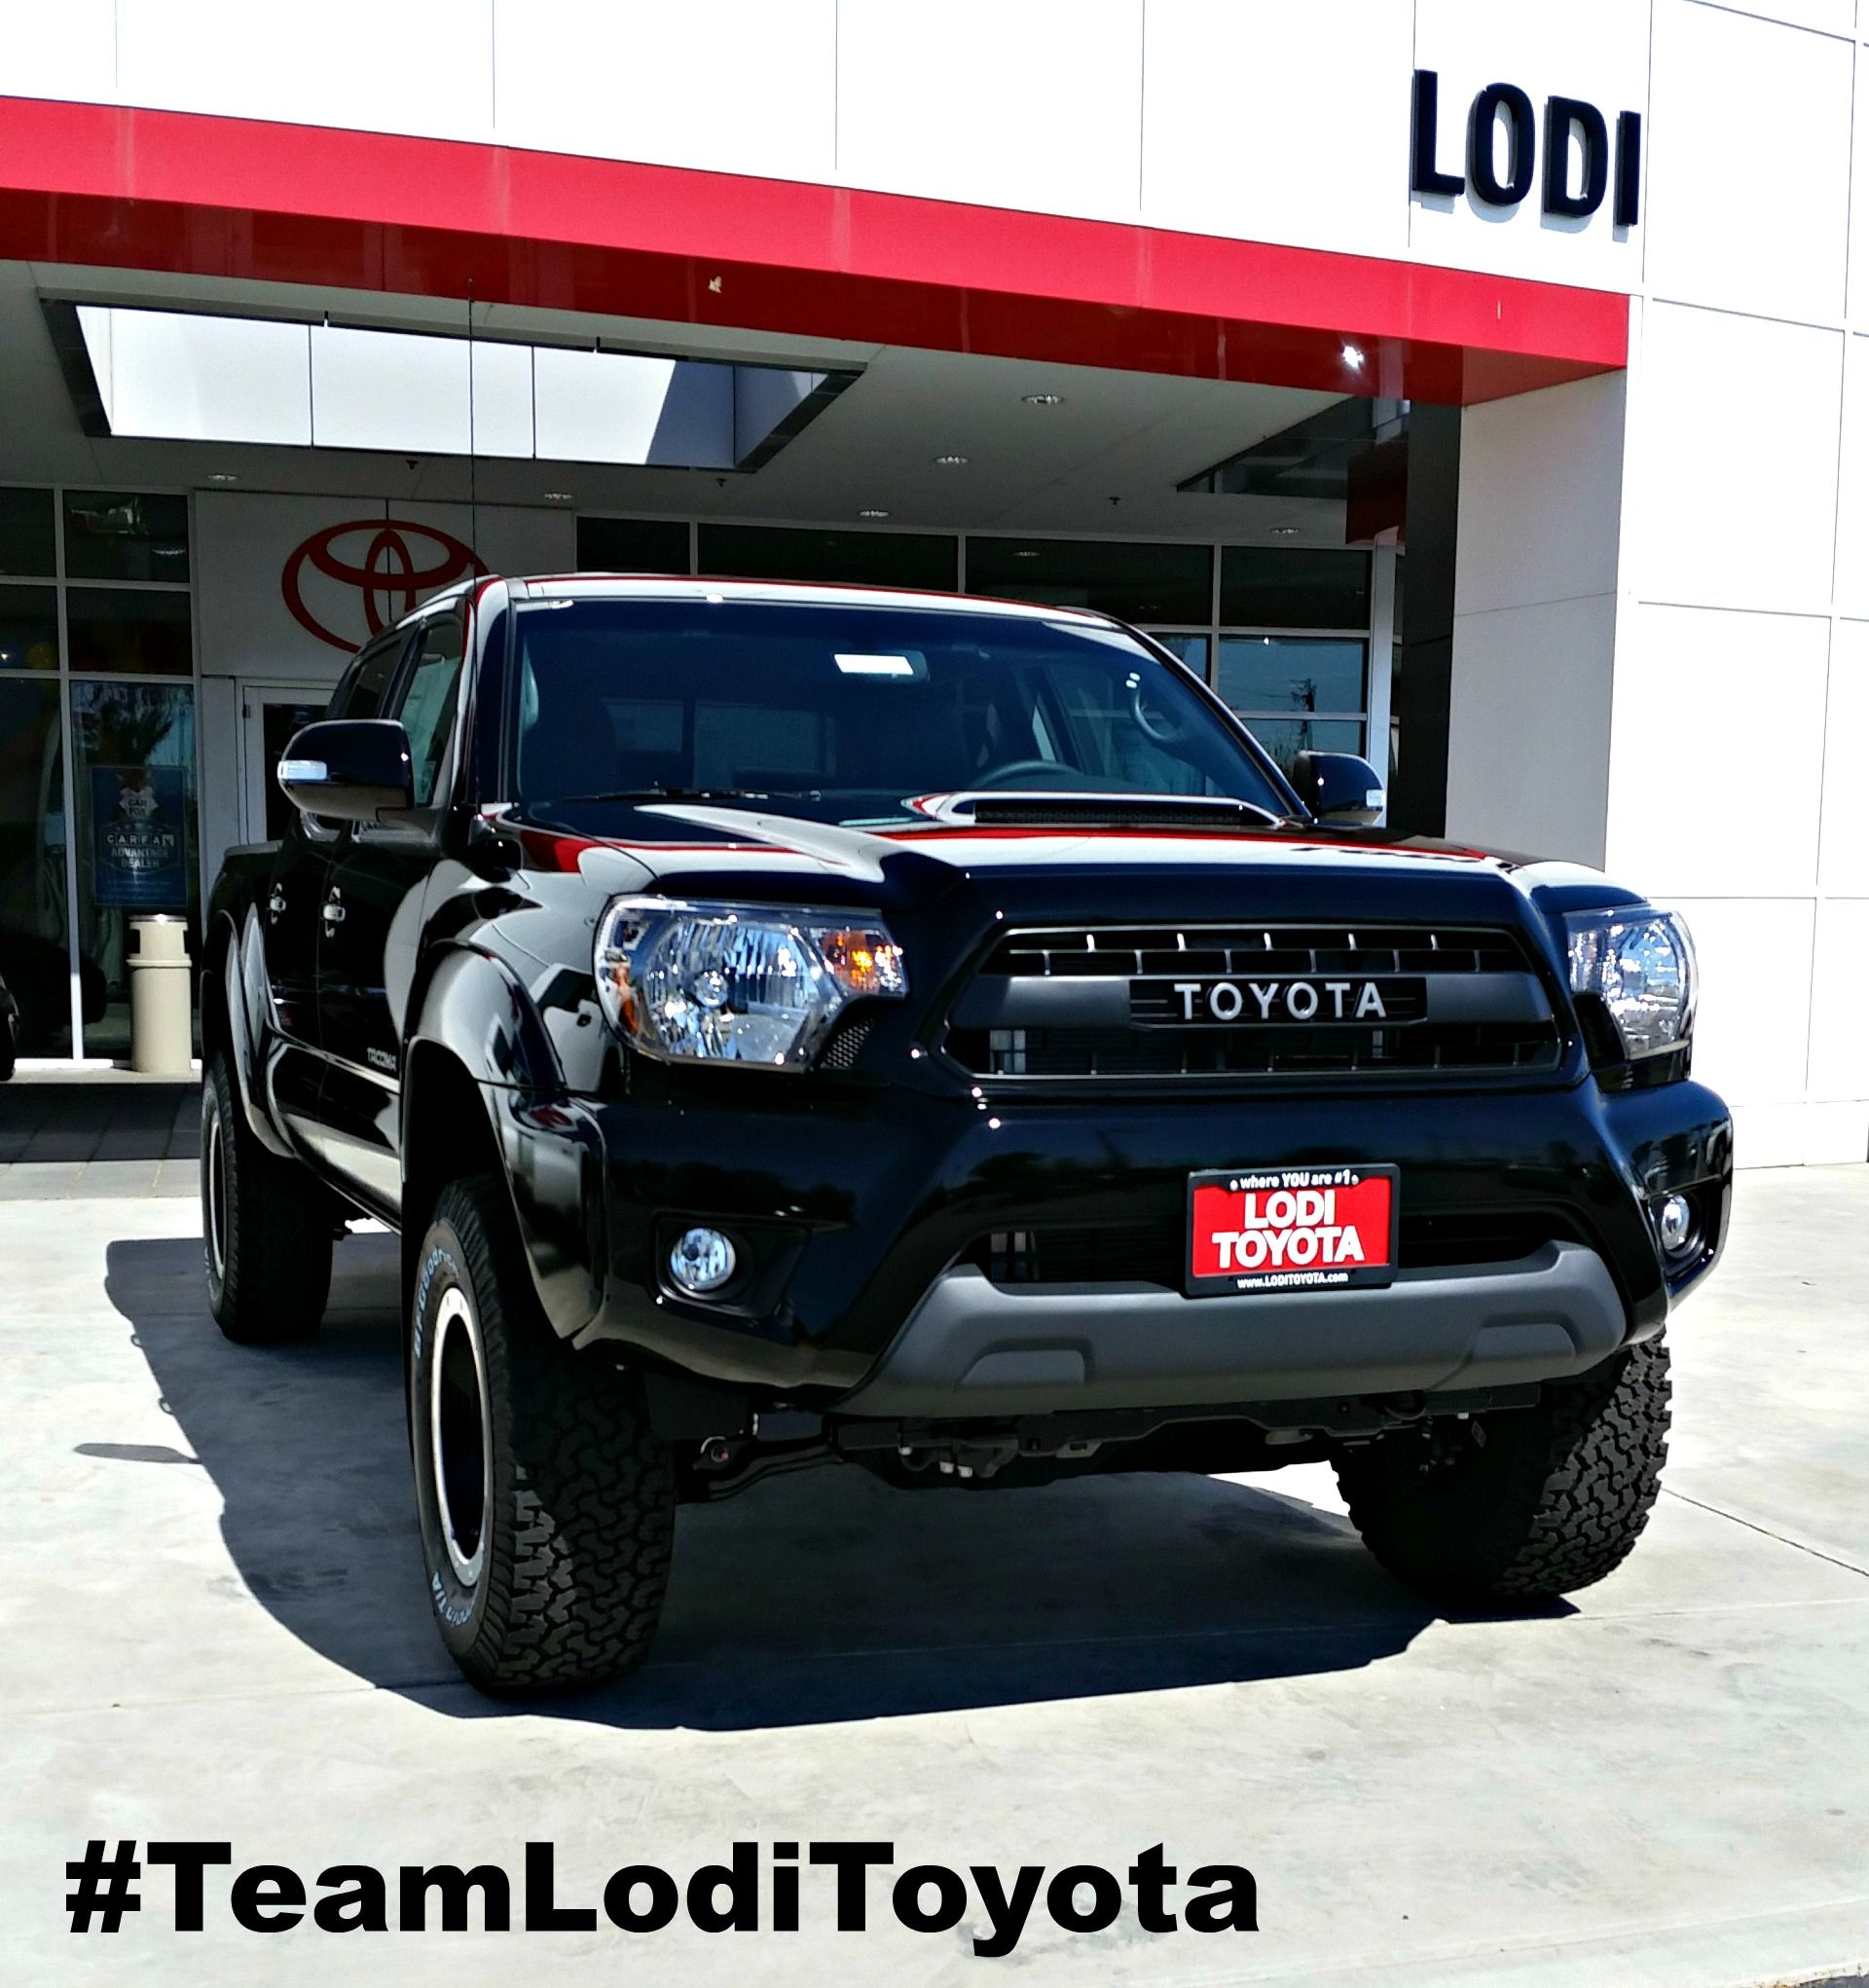 2017 Toyota Tacoma Trd Pro Absolutely Awesome Truck Smoked Headlights Custom Rims Bed Extender And So Much More Just 10 Minutes From Stockton